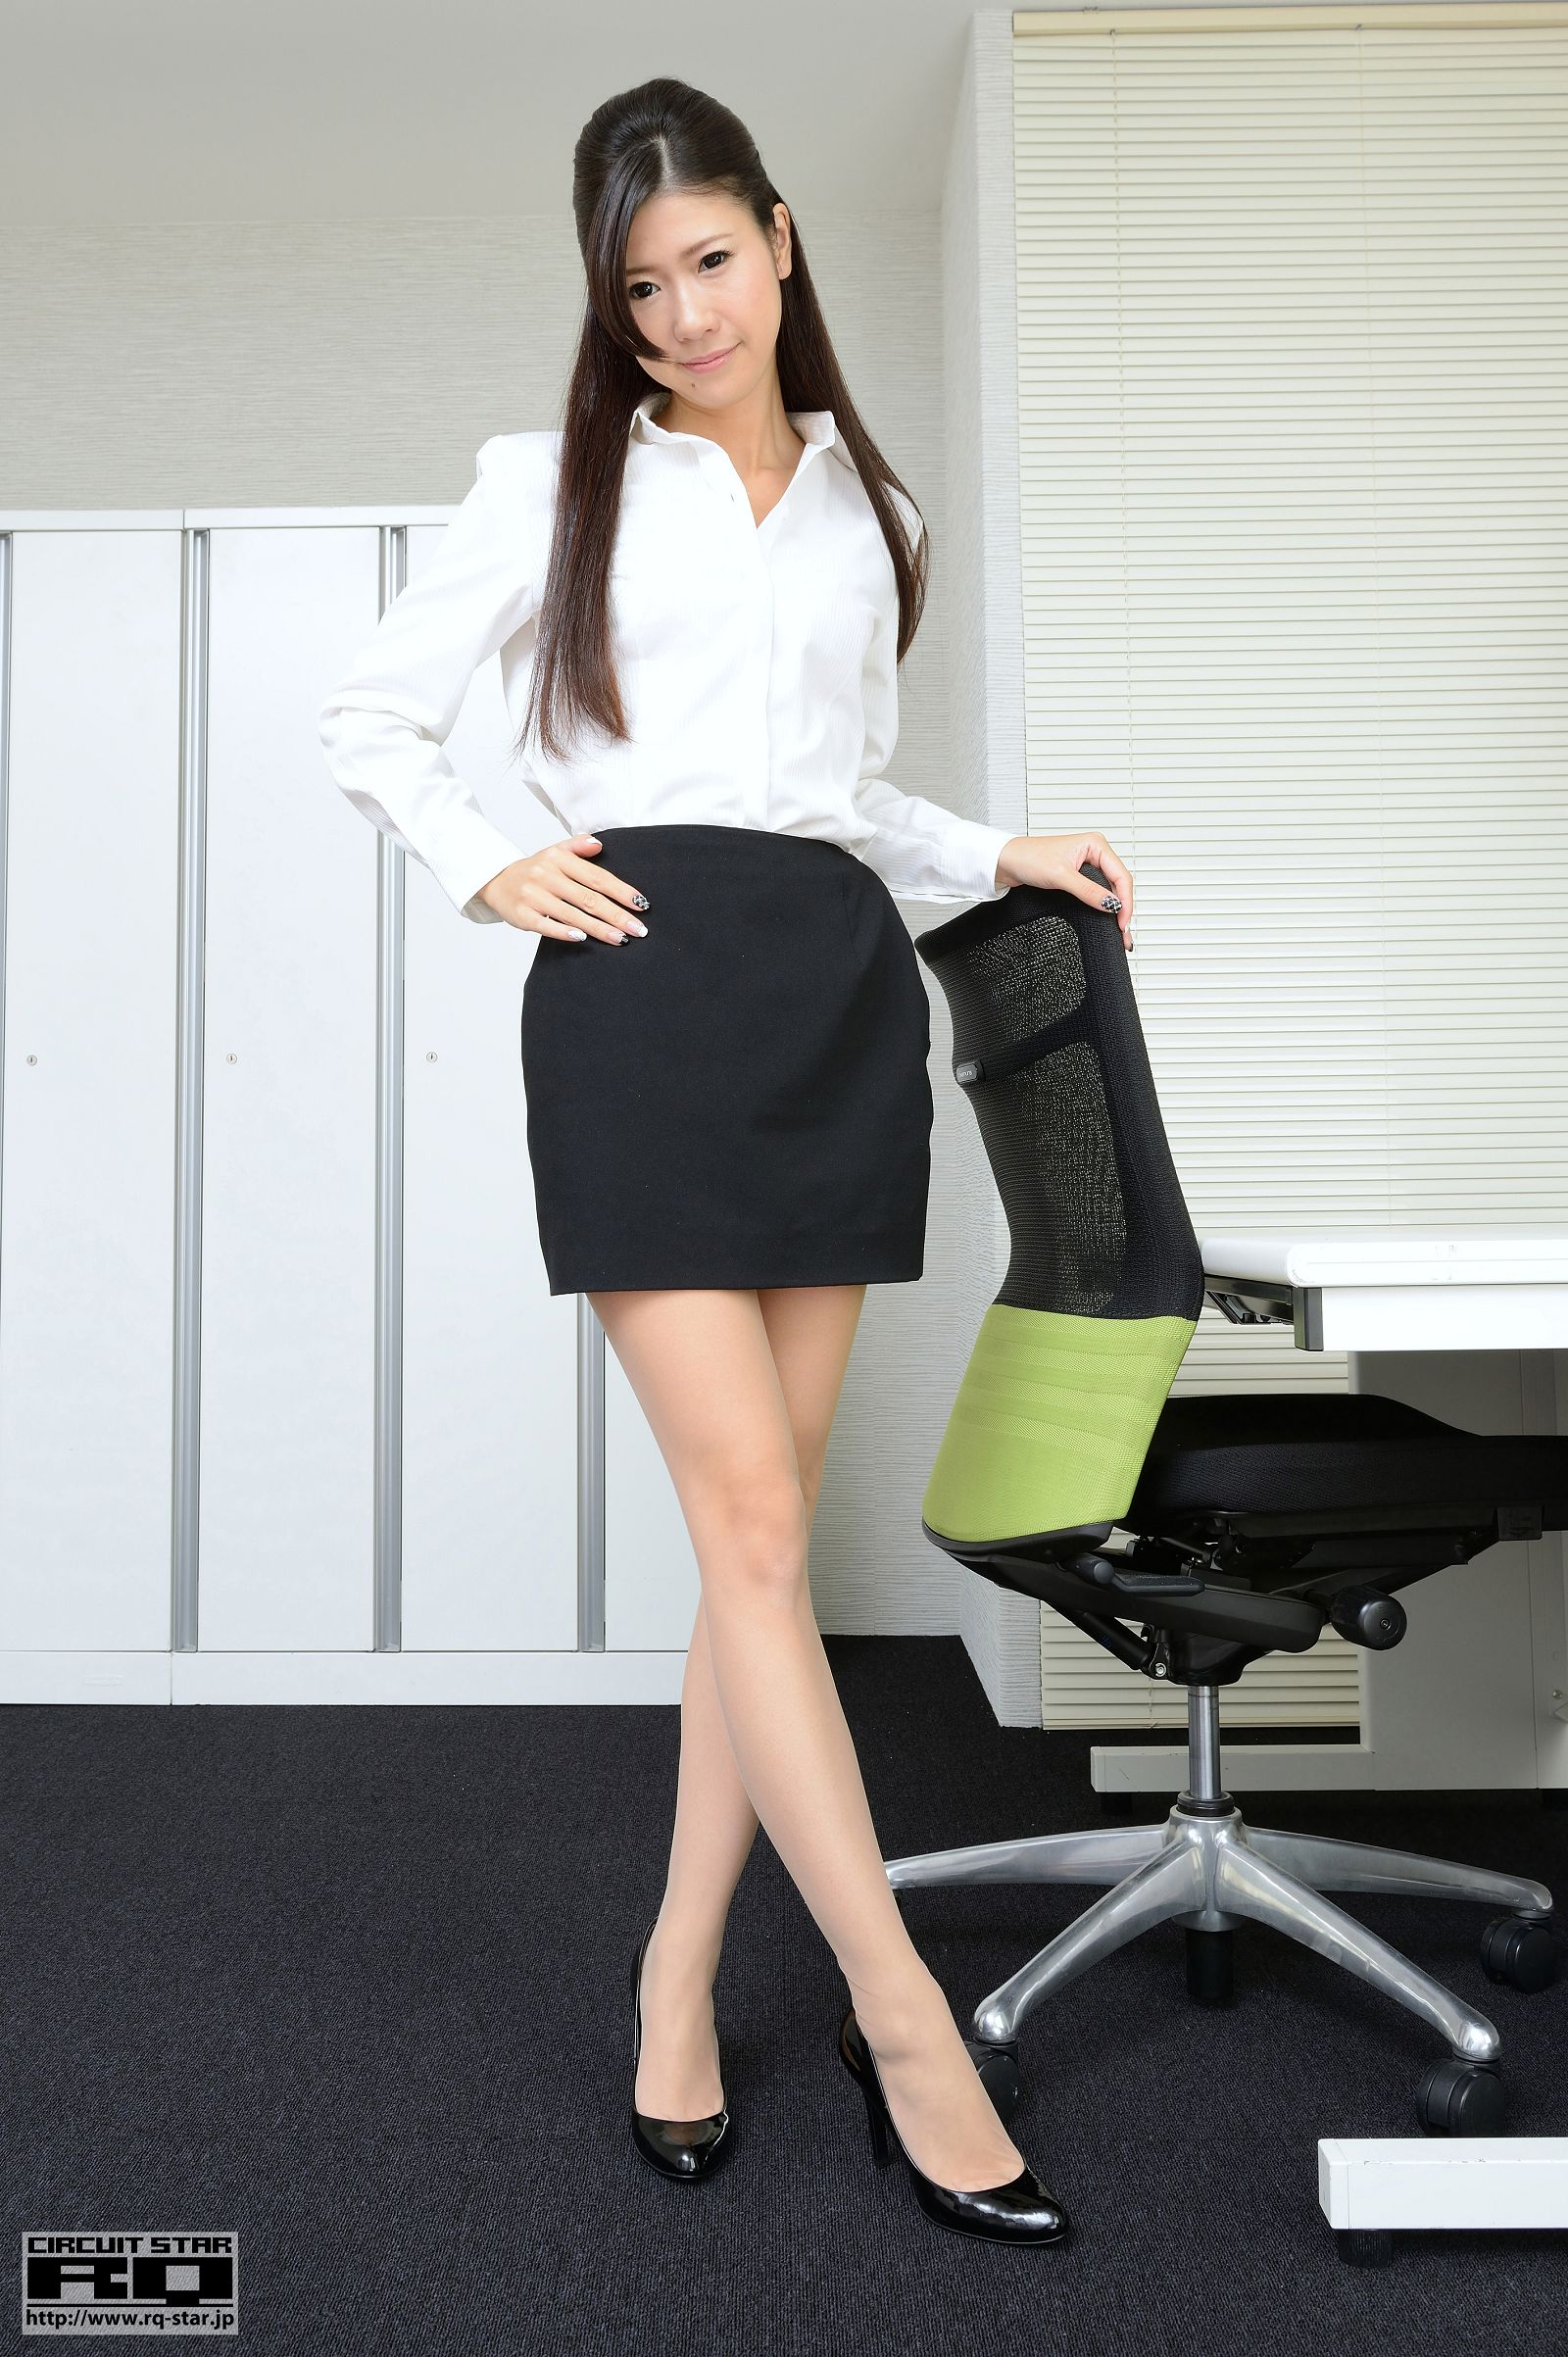 [RQ STAR美女] NO.00873 Miyu Sano 佐野美由 Office Lady[85P] RQ STAR 第1张